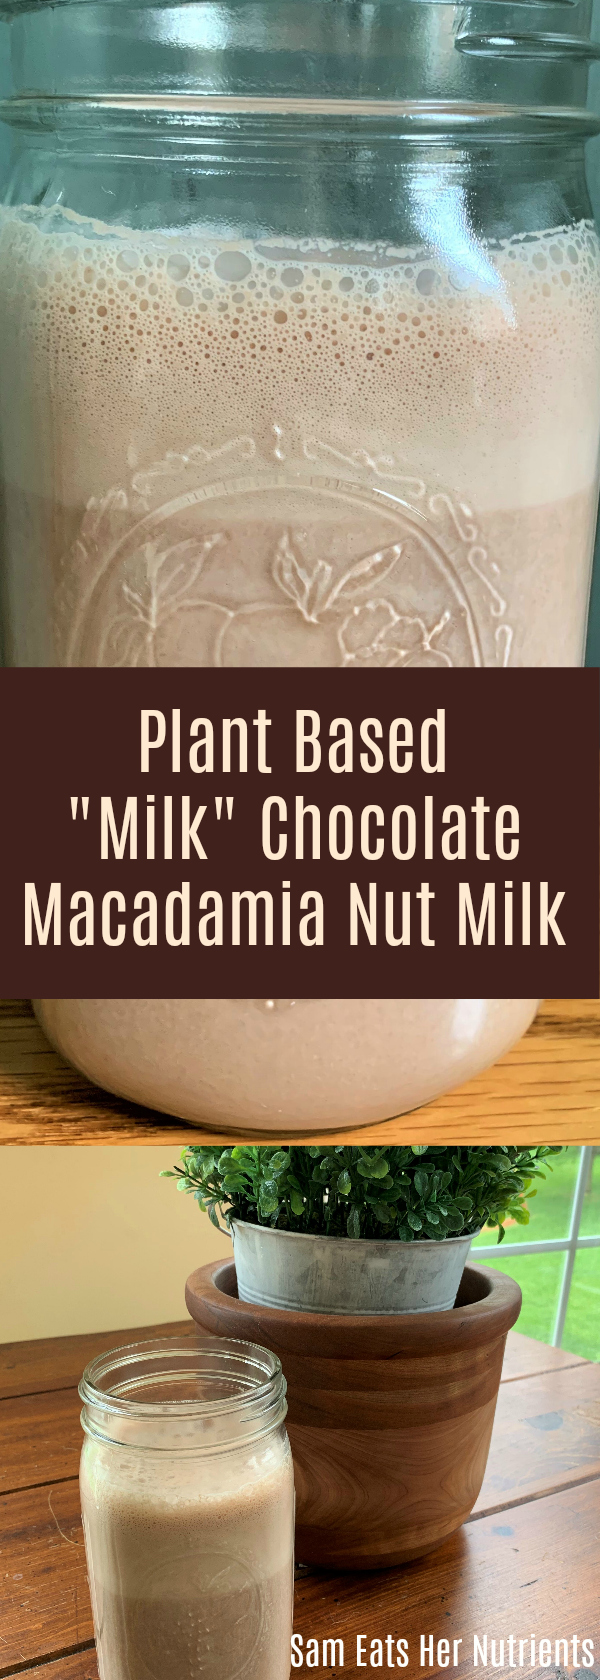 Plant Based Milk Chocolate Macadamia Nut Milk Gluten and Dairy Free